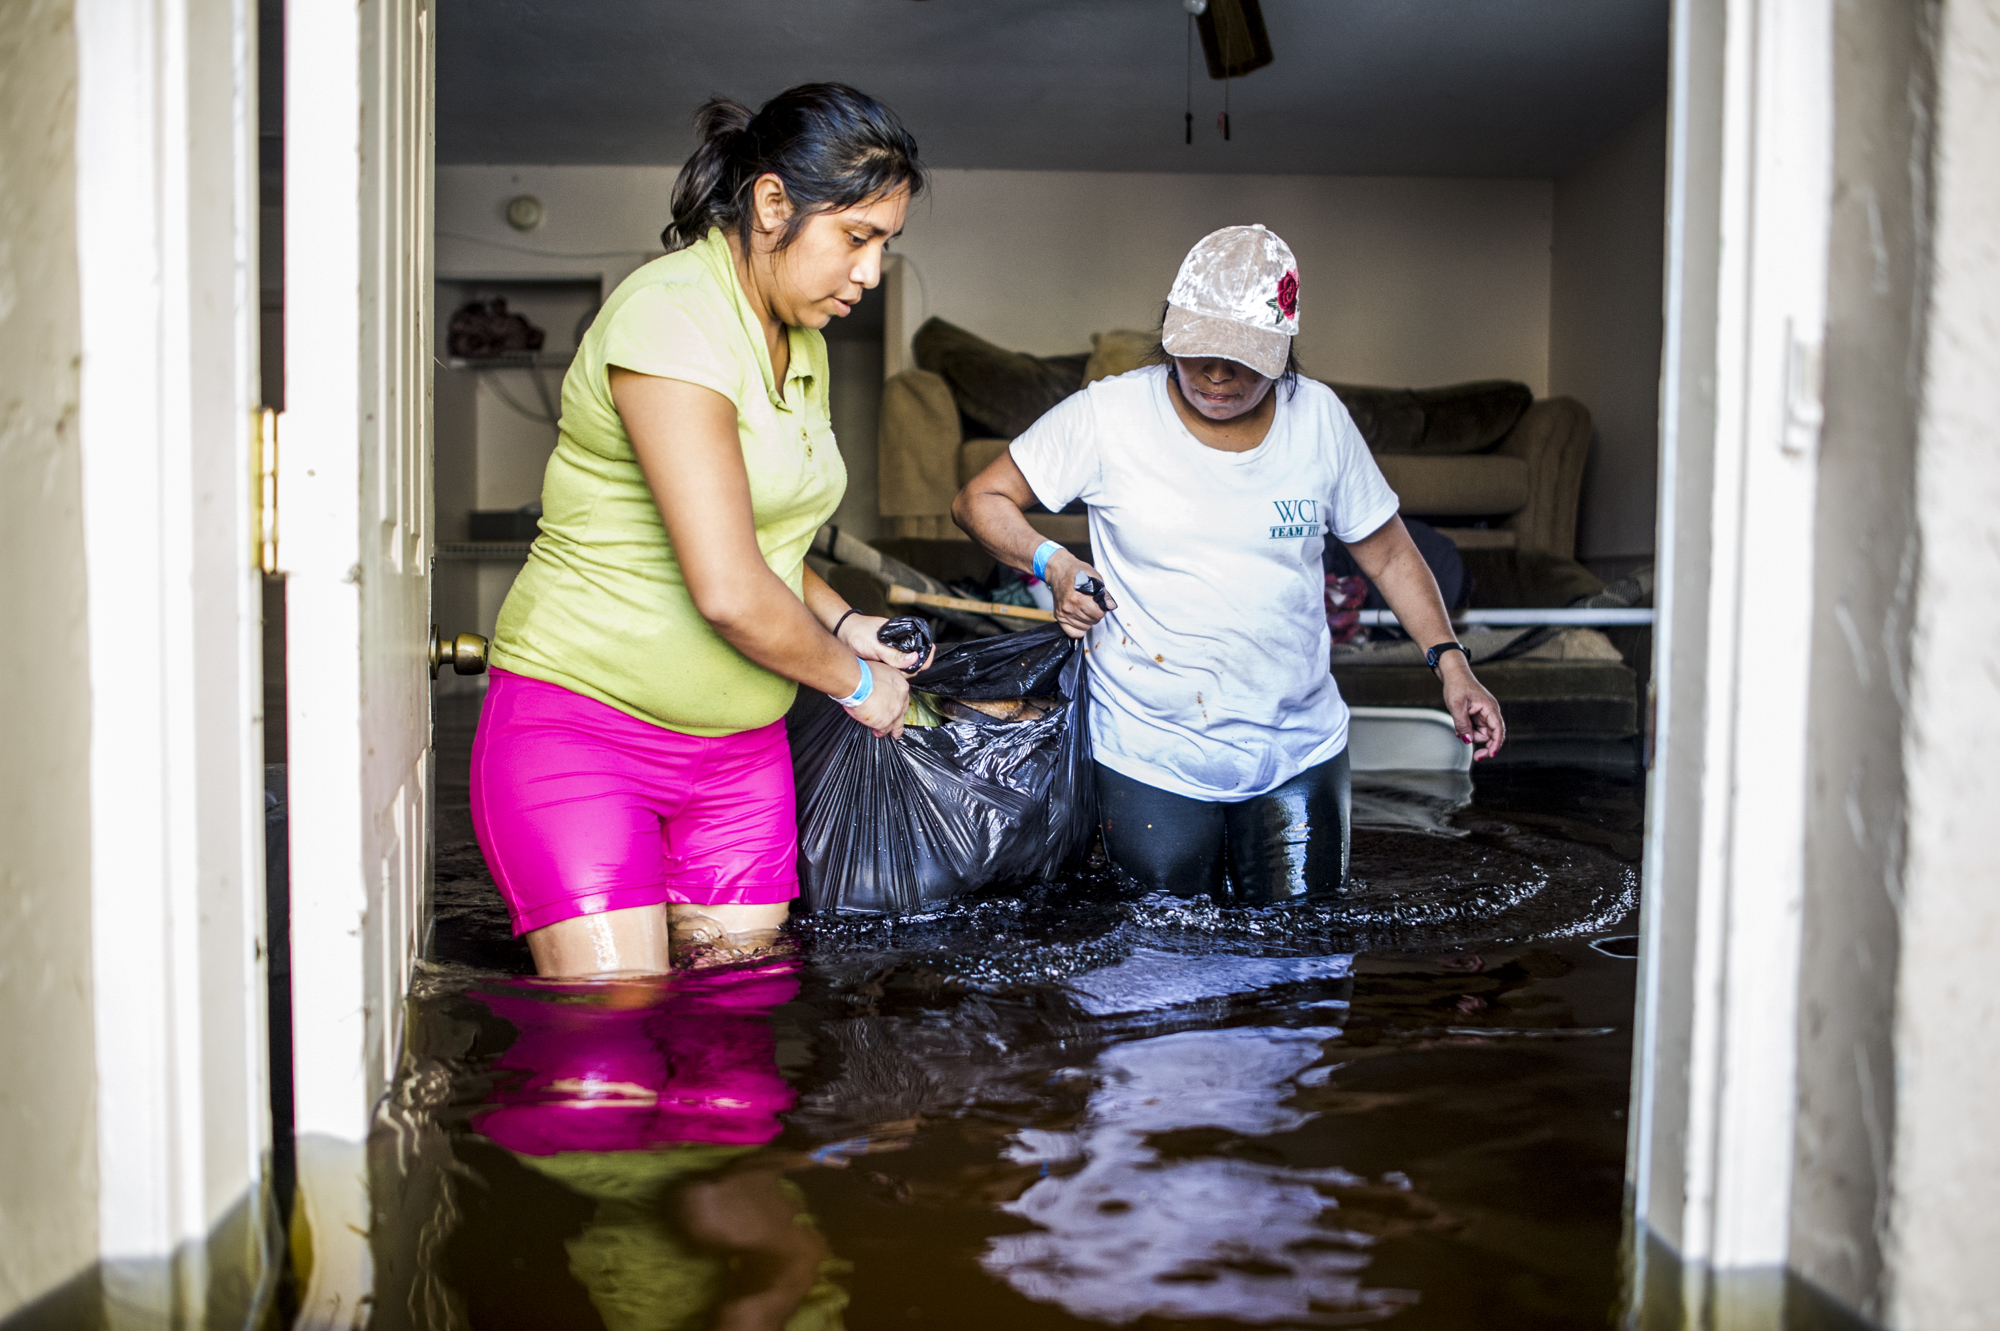 Nayeli Vasquez, left, and her aunt, Basilica Ventura, right, carry the last salvageable valuables out of their flooded home in Bonita Springs.